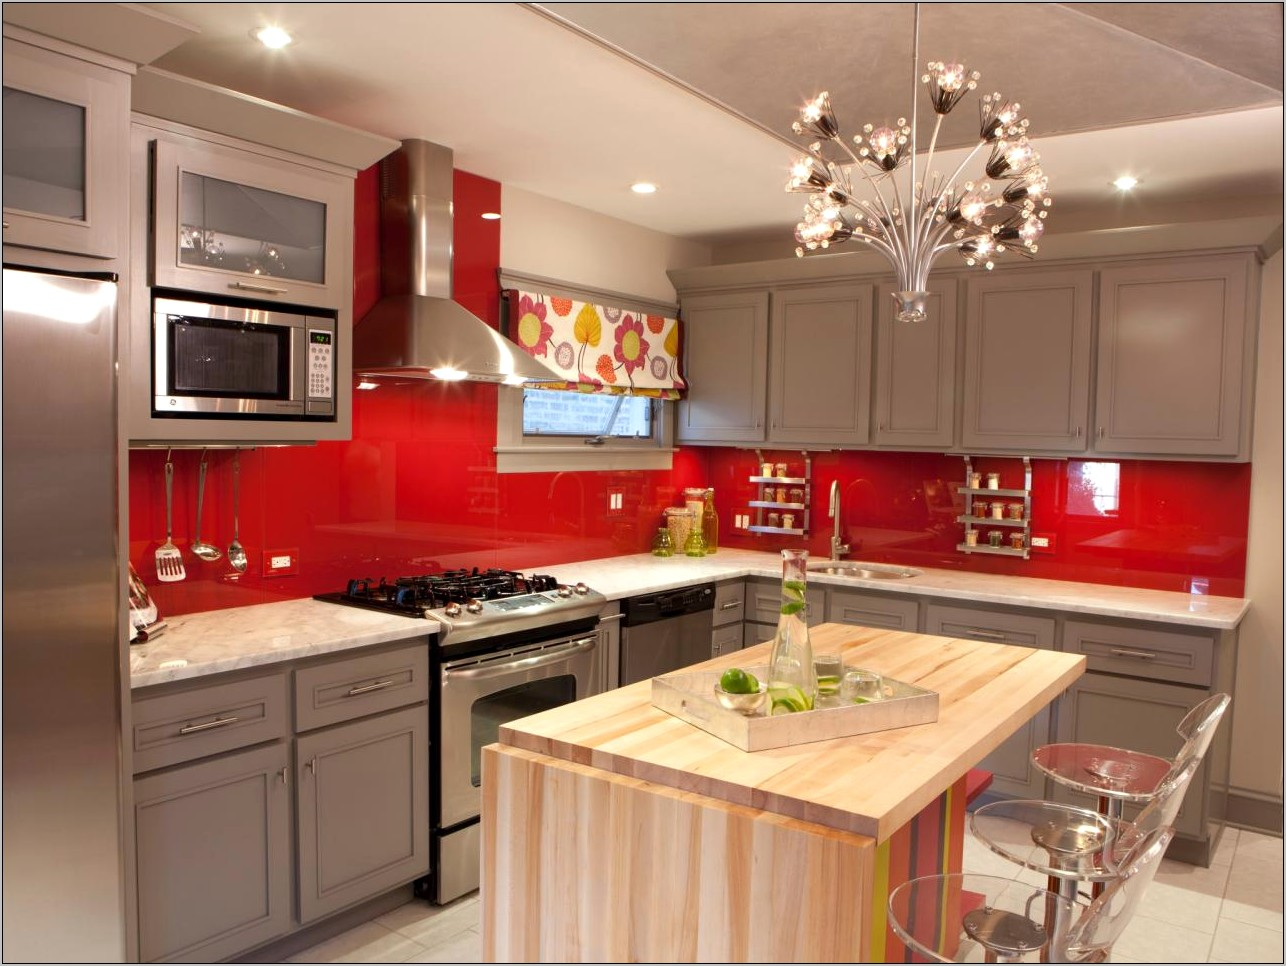 Kitchen Gray Walls Blue White Red Decor